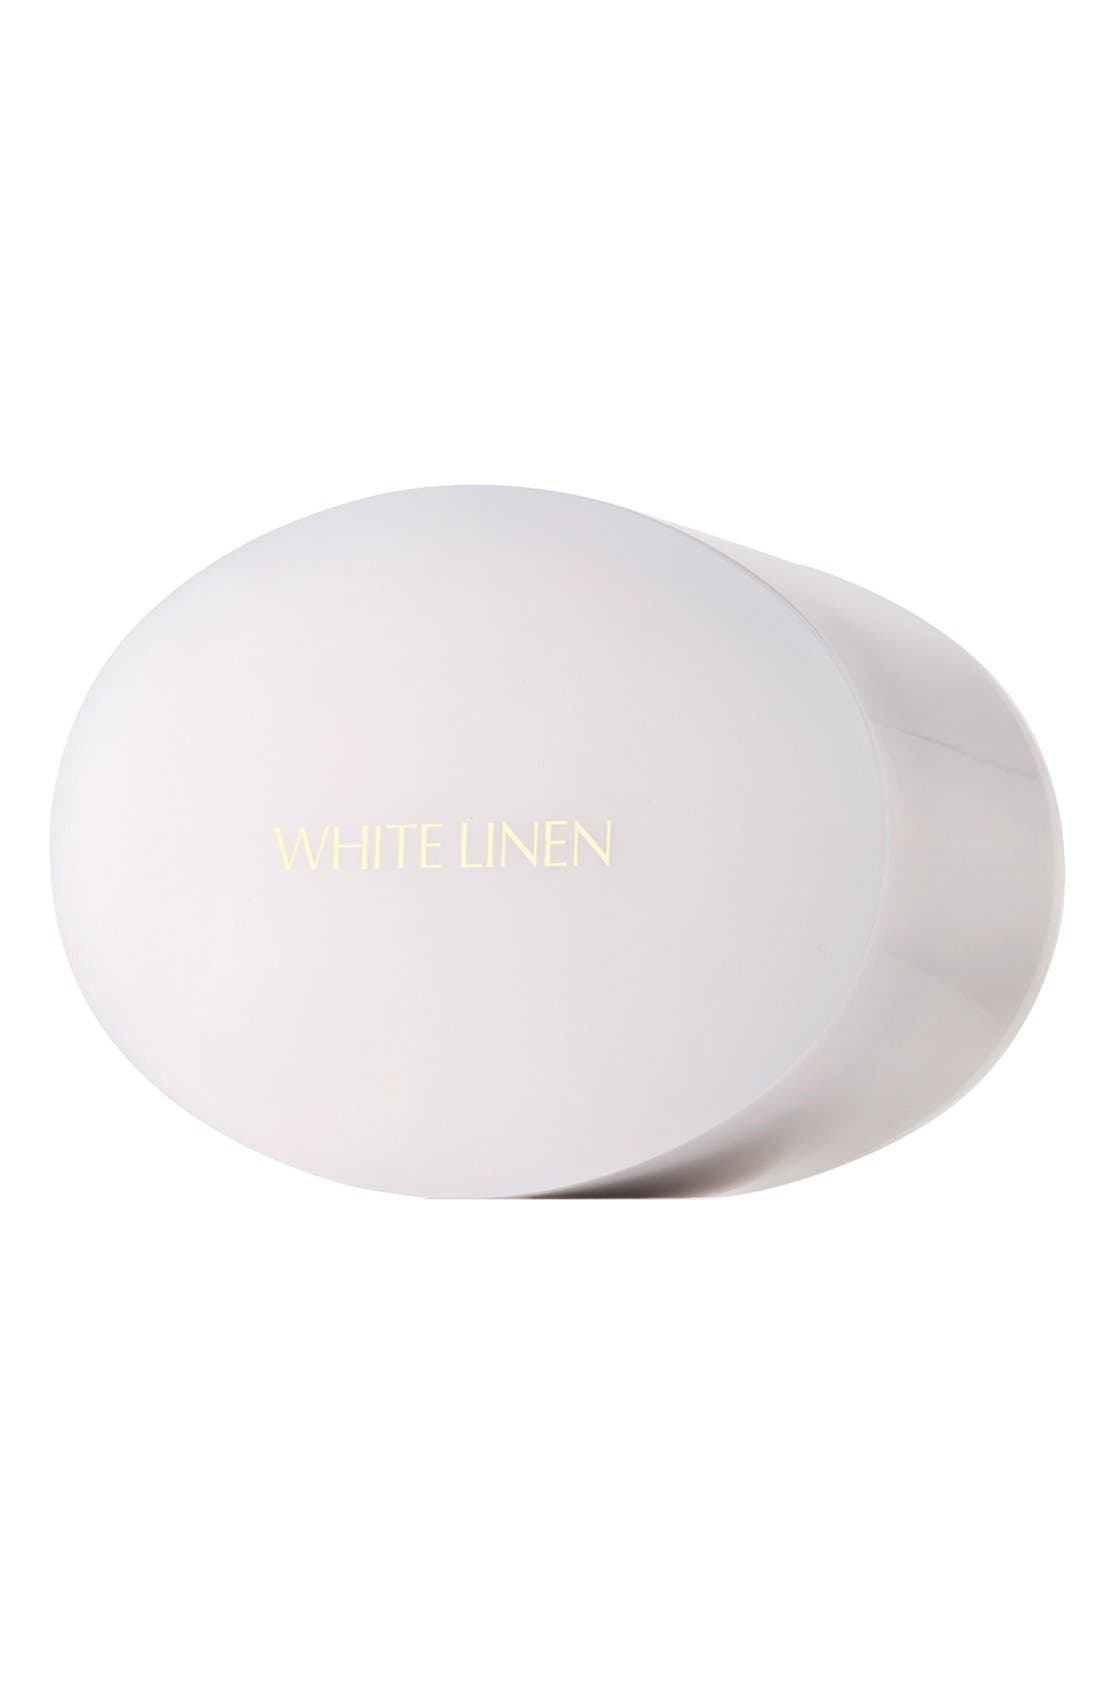 Estée Lauder White Linen Perfumed Body Powder with Puff